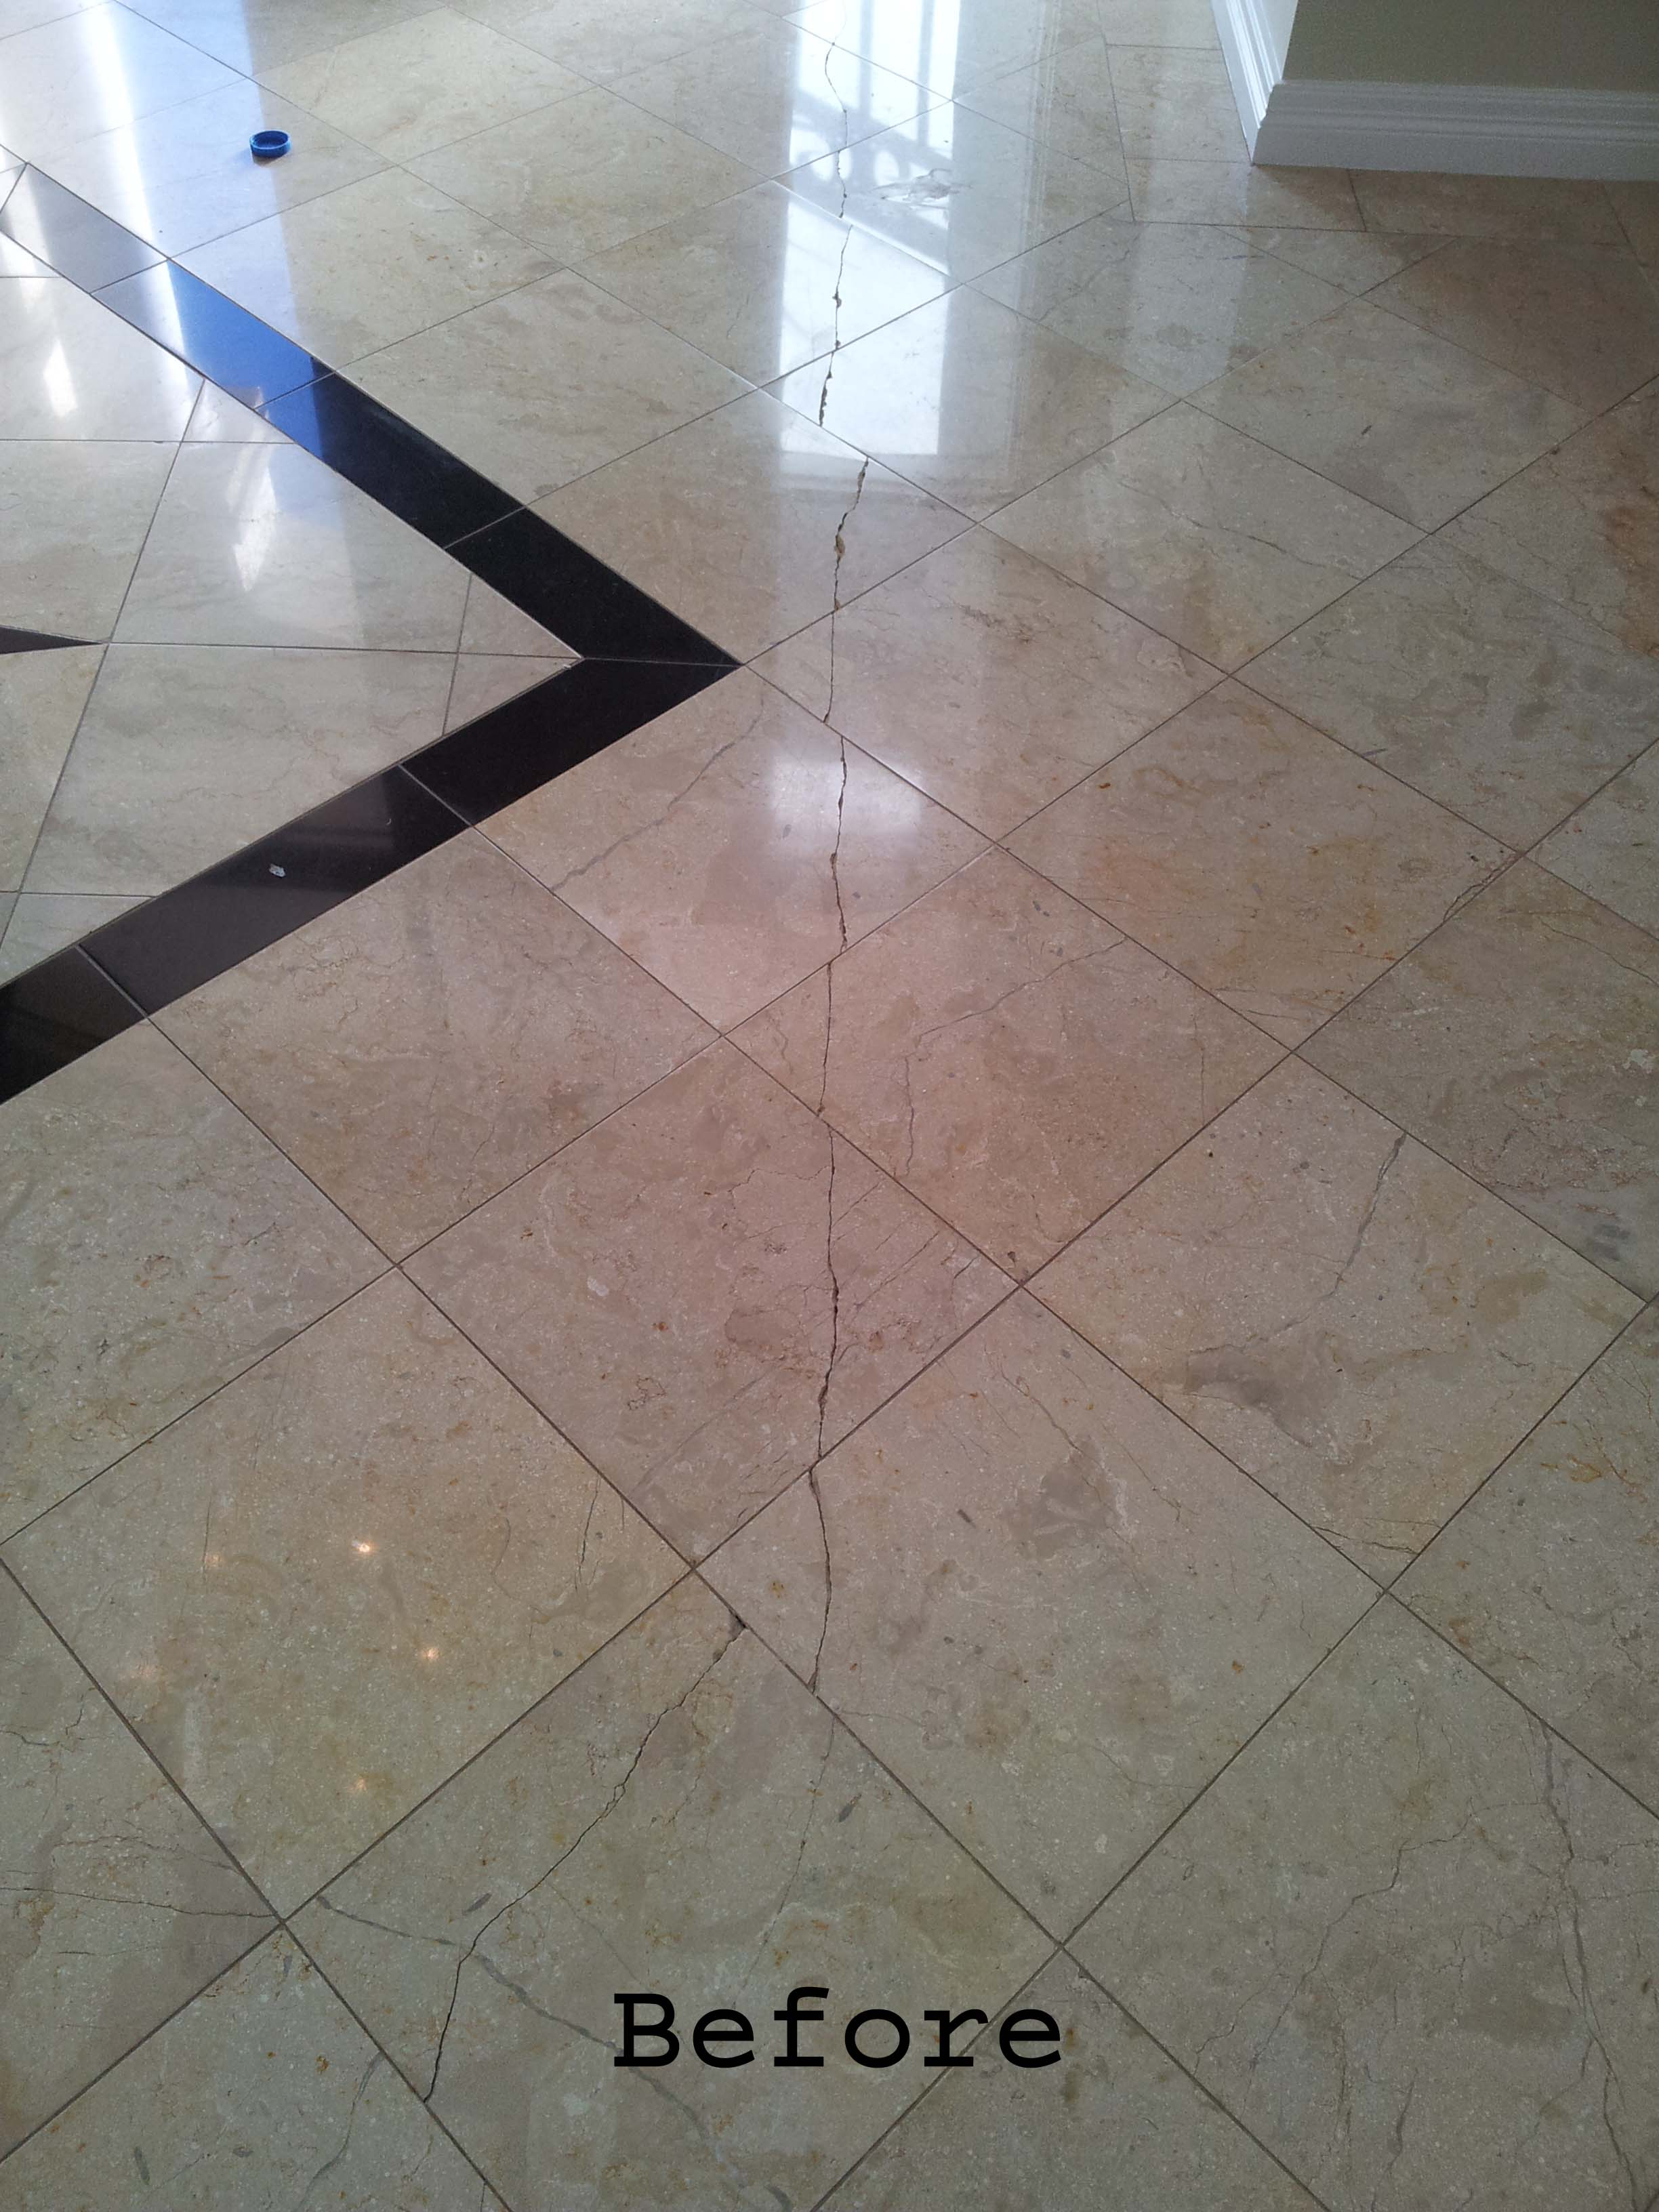 Crack repairs to marble and natural stone tiles repairing cracked damaged marble limestone travertine sandstone granite tiled floors dailygadgetfo Choice Image